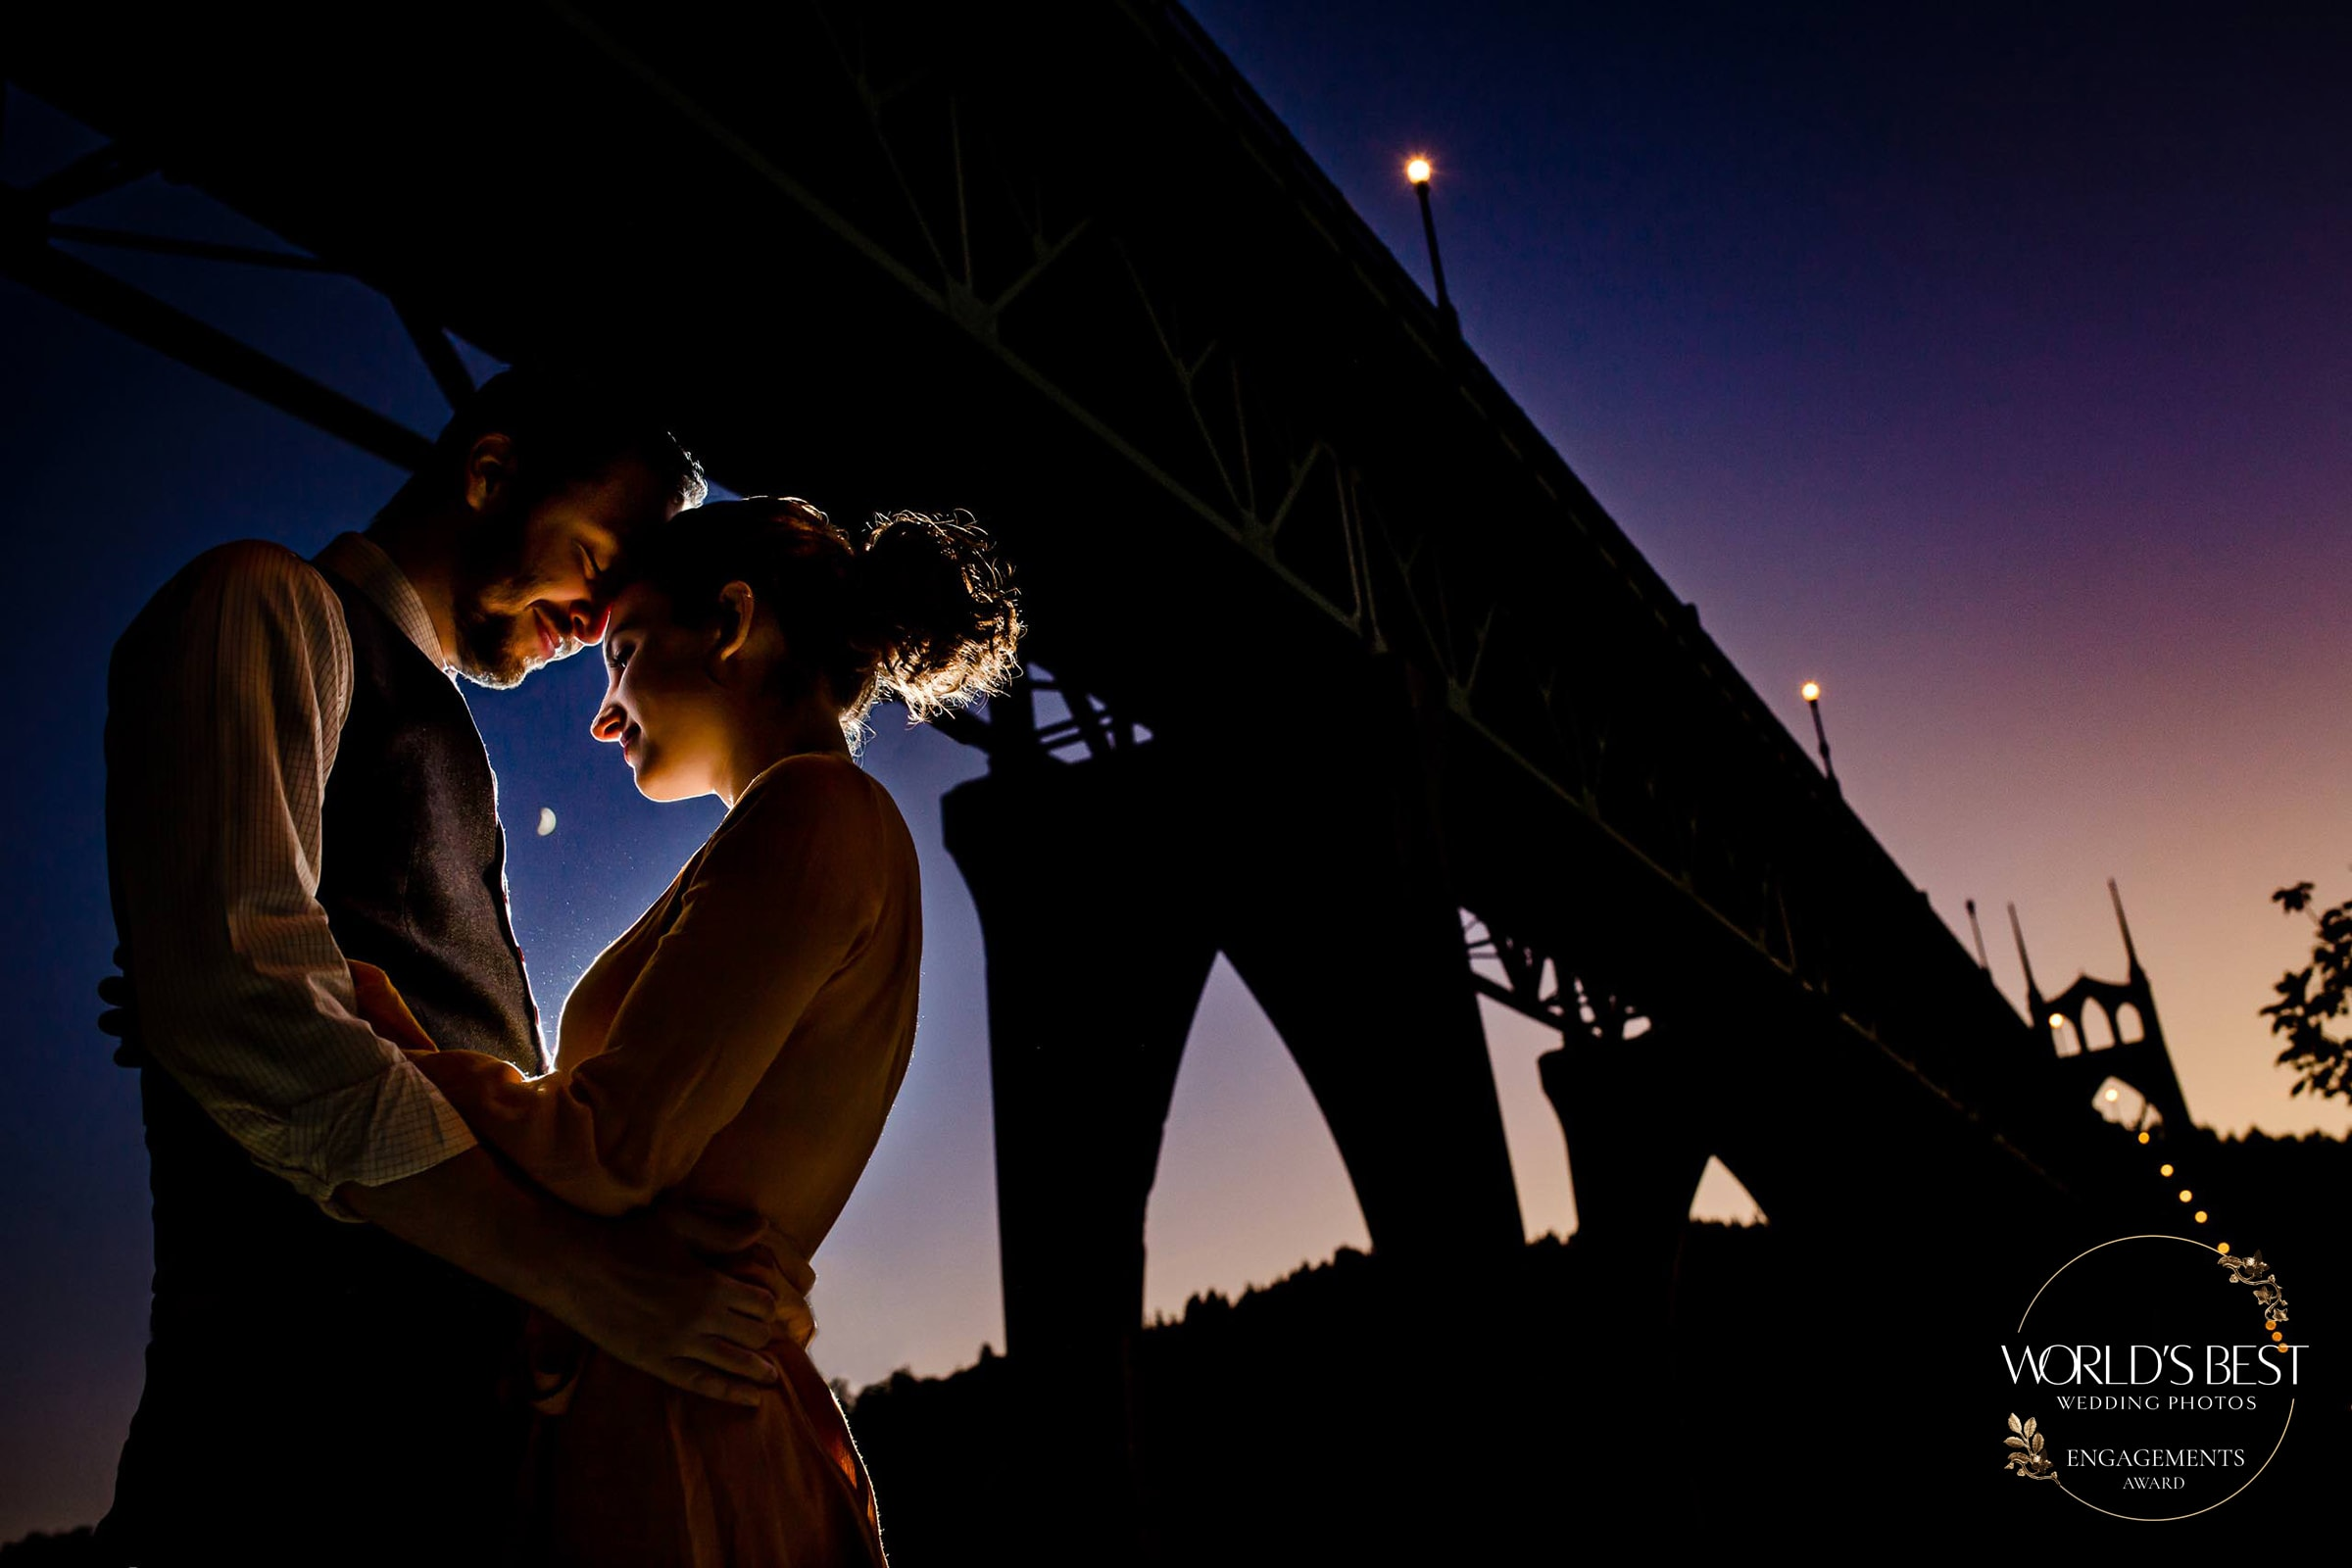 Award winning engagement photo by Worlds Best Wedding Photos for the top 50 all time best engagement photos